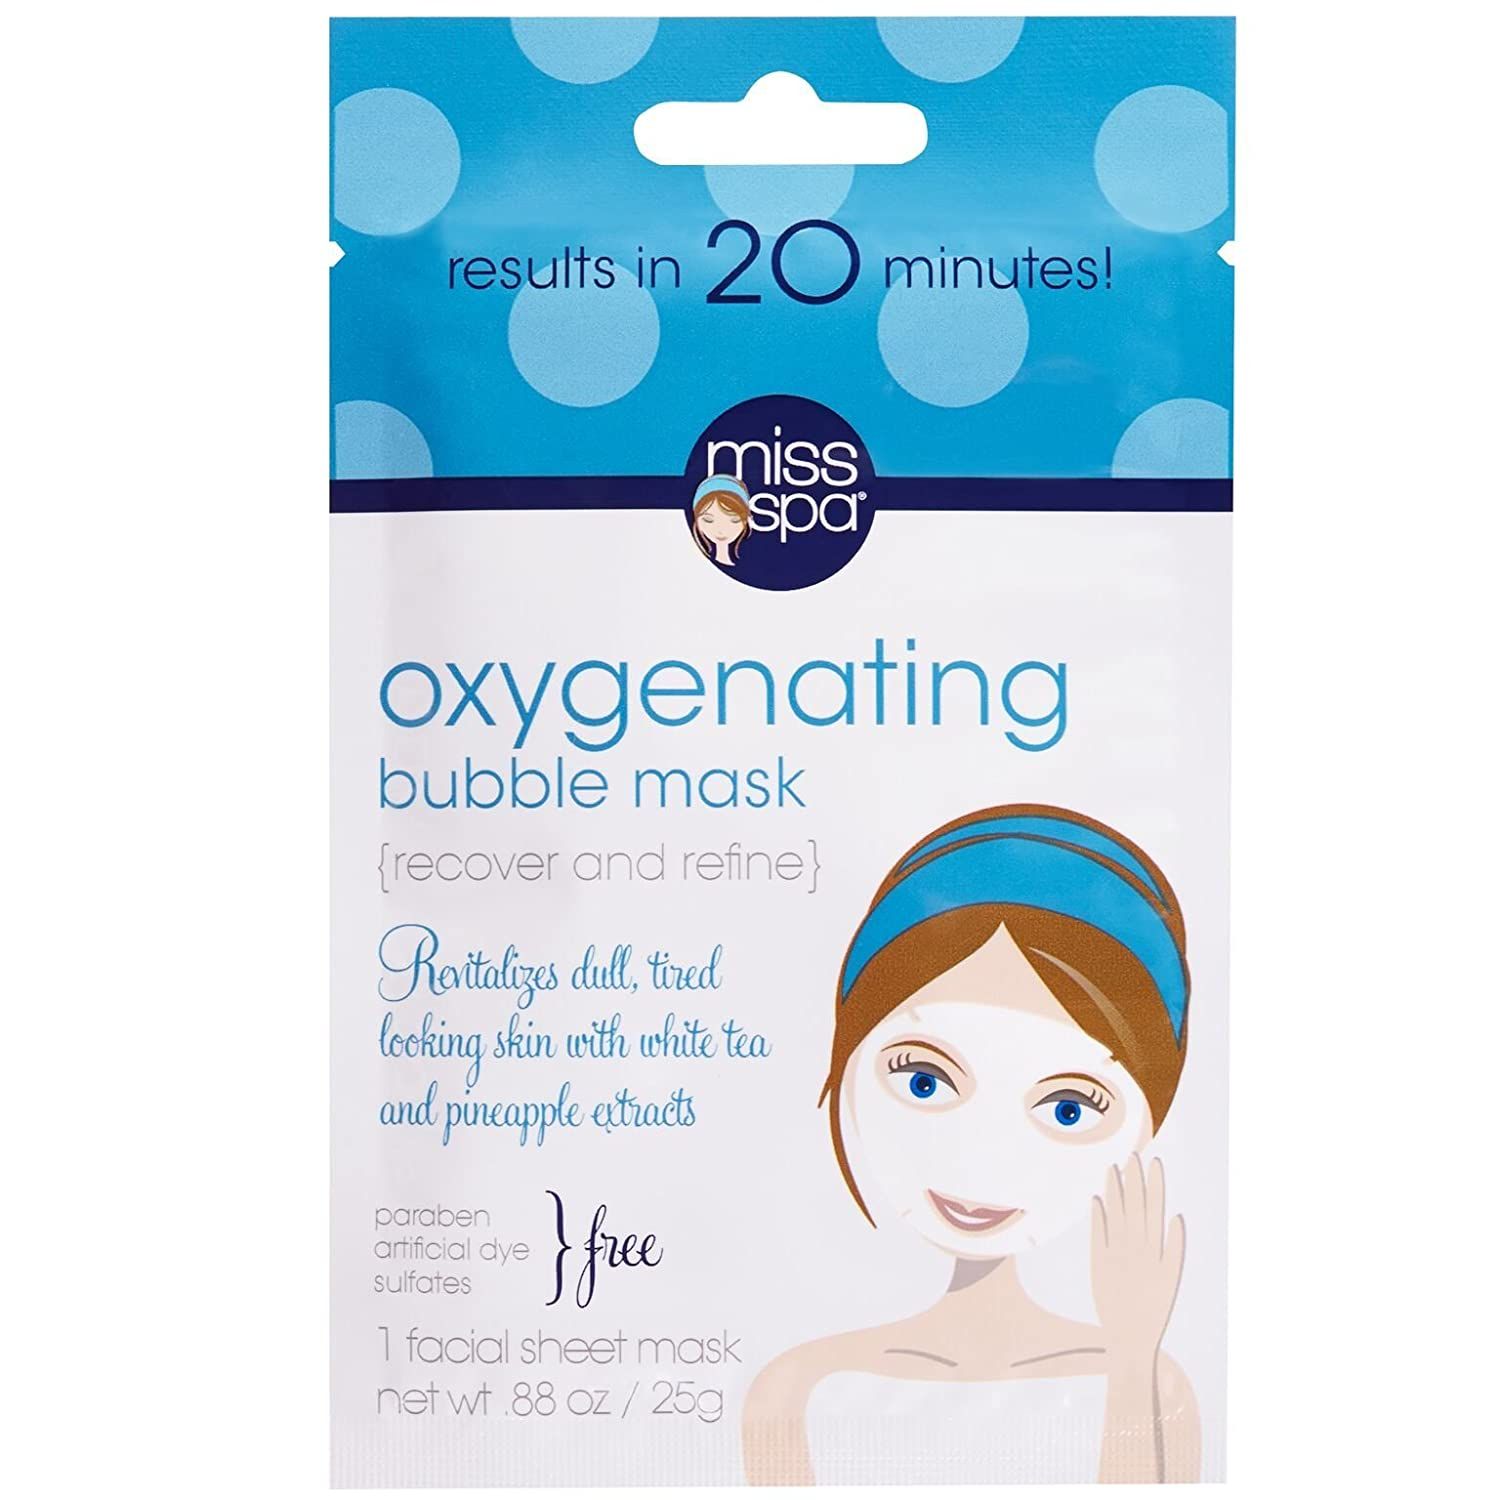 Miss Spa Oxygenating Bubble Mask